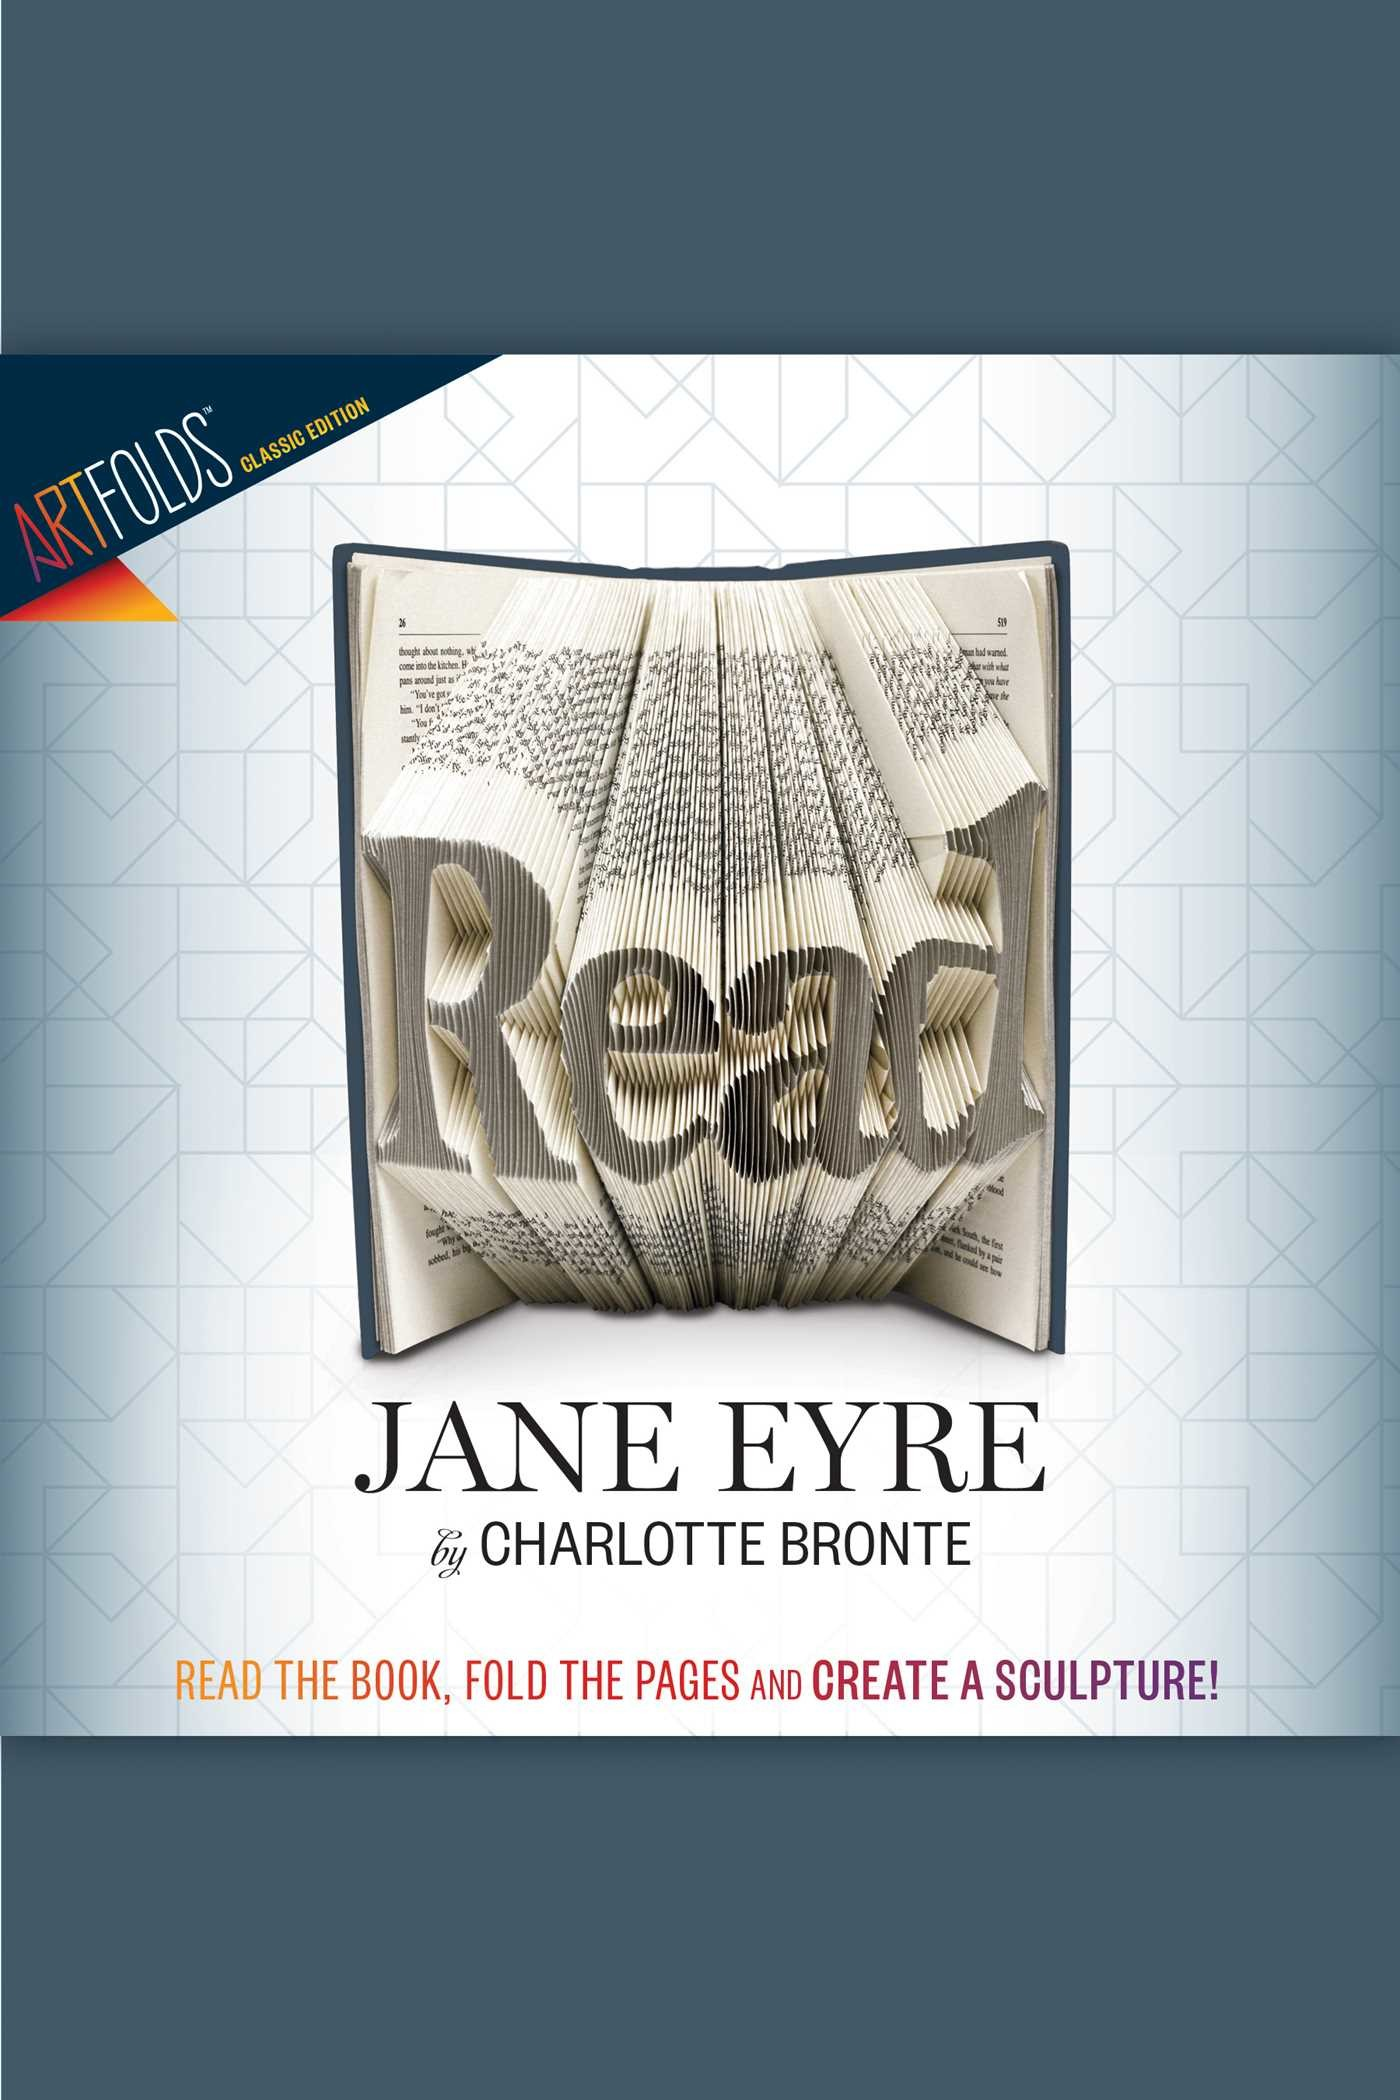 essay on jane eyre by charlotte bronte Now i know why charlotte bronte said this of jane austen: jane eyre by charlotte bronte is composed of many wonderful dialogues.